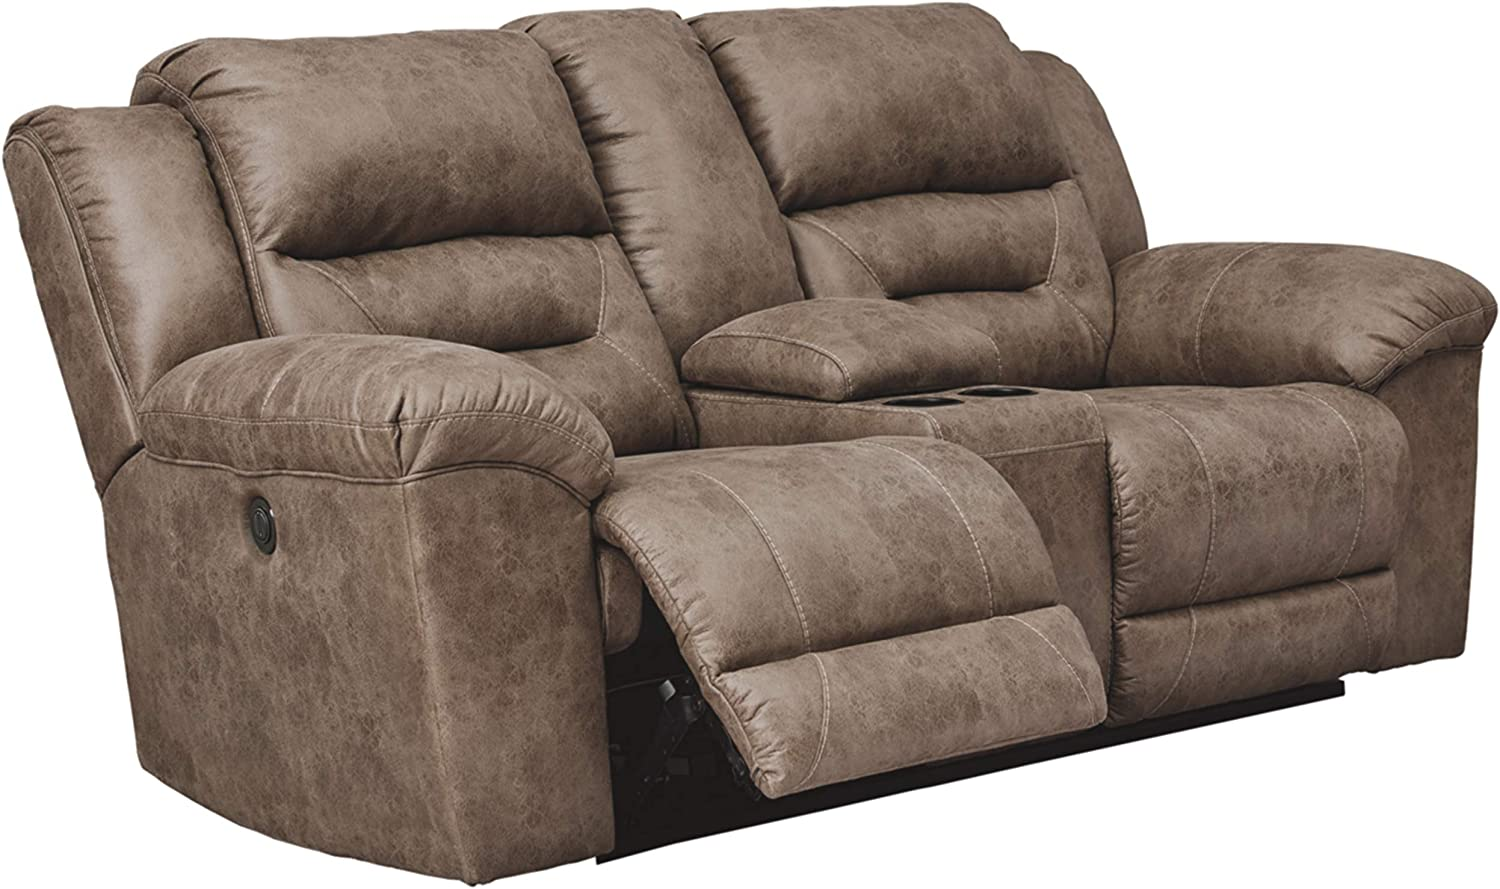 Signature Design by Ashley - Stoneland Faux Leather Double Power Reclining Loveseat with Console, Light Brown